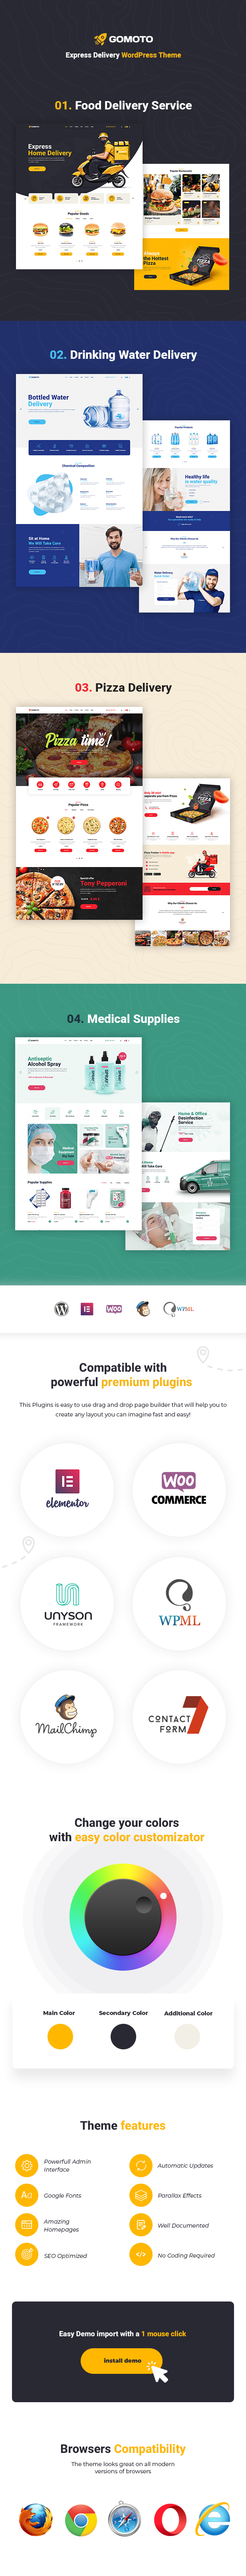 Gomoto - Food Delivery & Medical Supplies WordPress Theme - 4